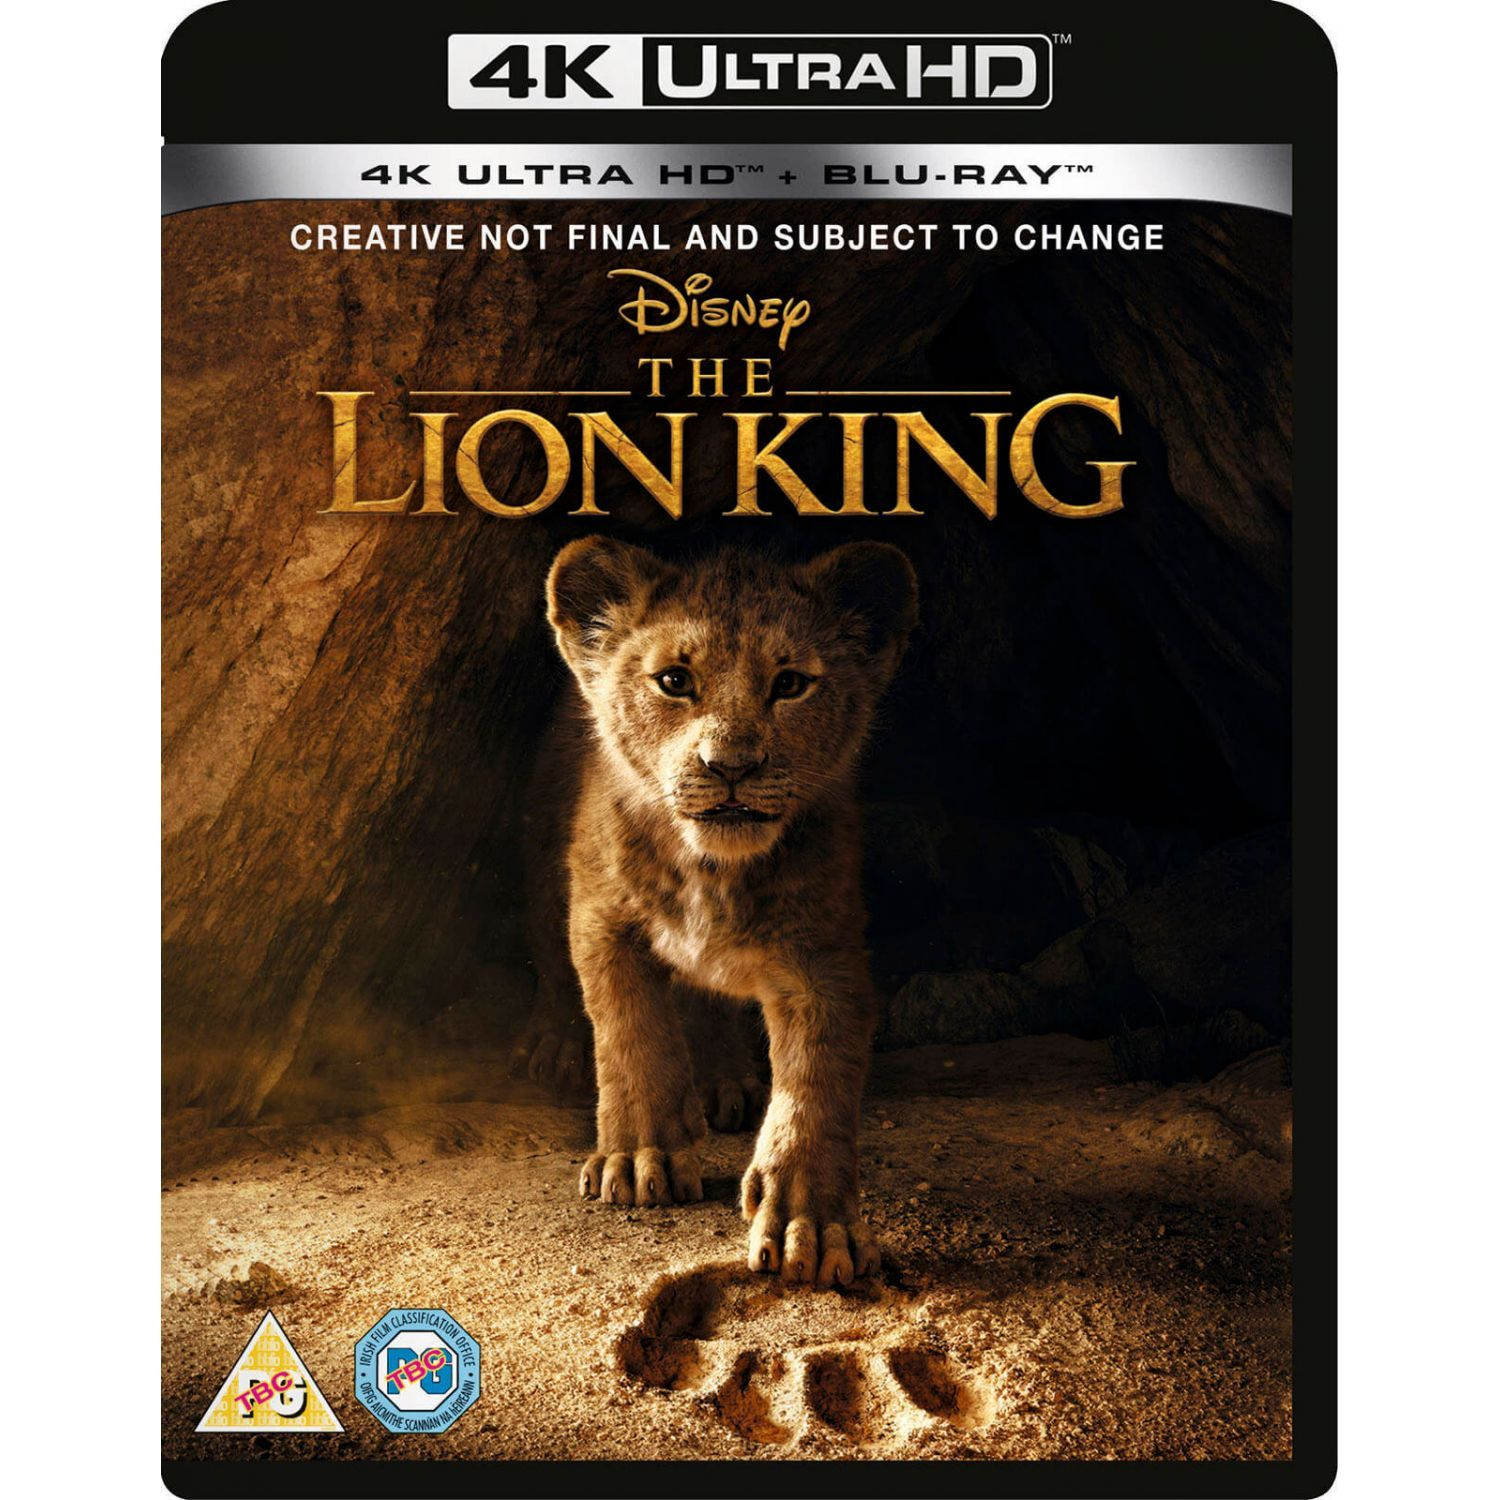 THE LION KING [2019] [Imported] (4K UHD BLU-RAY + BLU-RAY) | HD-shop gr